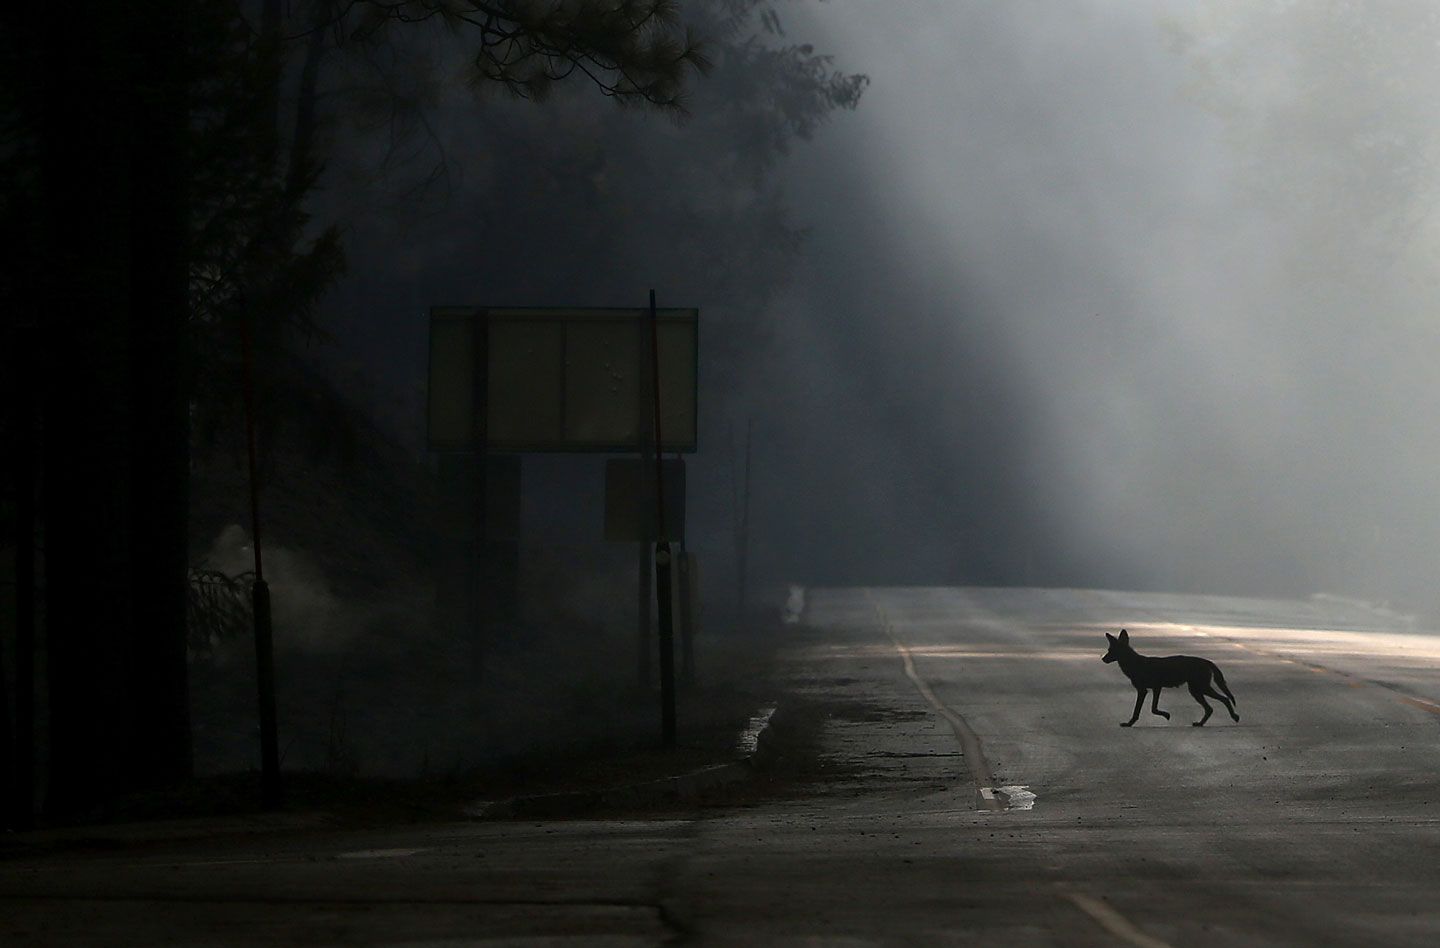 GROVELAND, CA - AUGUST 23:  A coyote walks across U.S. Highway 120, shut down due to the Rim Fire on August 23, 2013 near Groveland, California. The Rim Fire continues to burn out of control and threatens 4,500 homes outside of Yosemite National Park. Over 2,000 firefighters are battling the blaze that entered a section of Yosemite National Park overnight and is only 2 percent contained.  (Photo by Justin Sullivan/Getty Images)